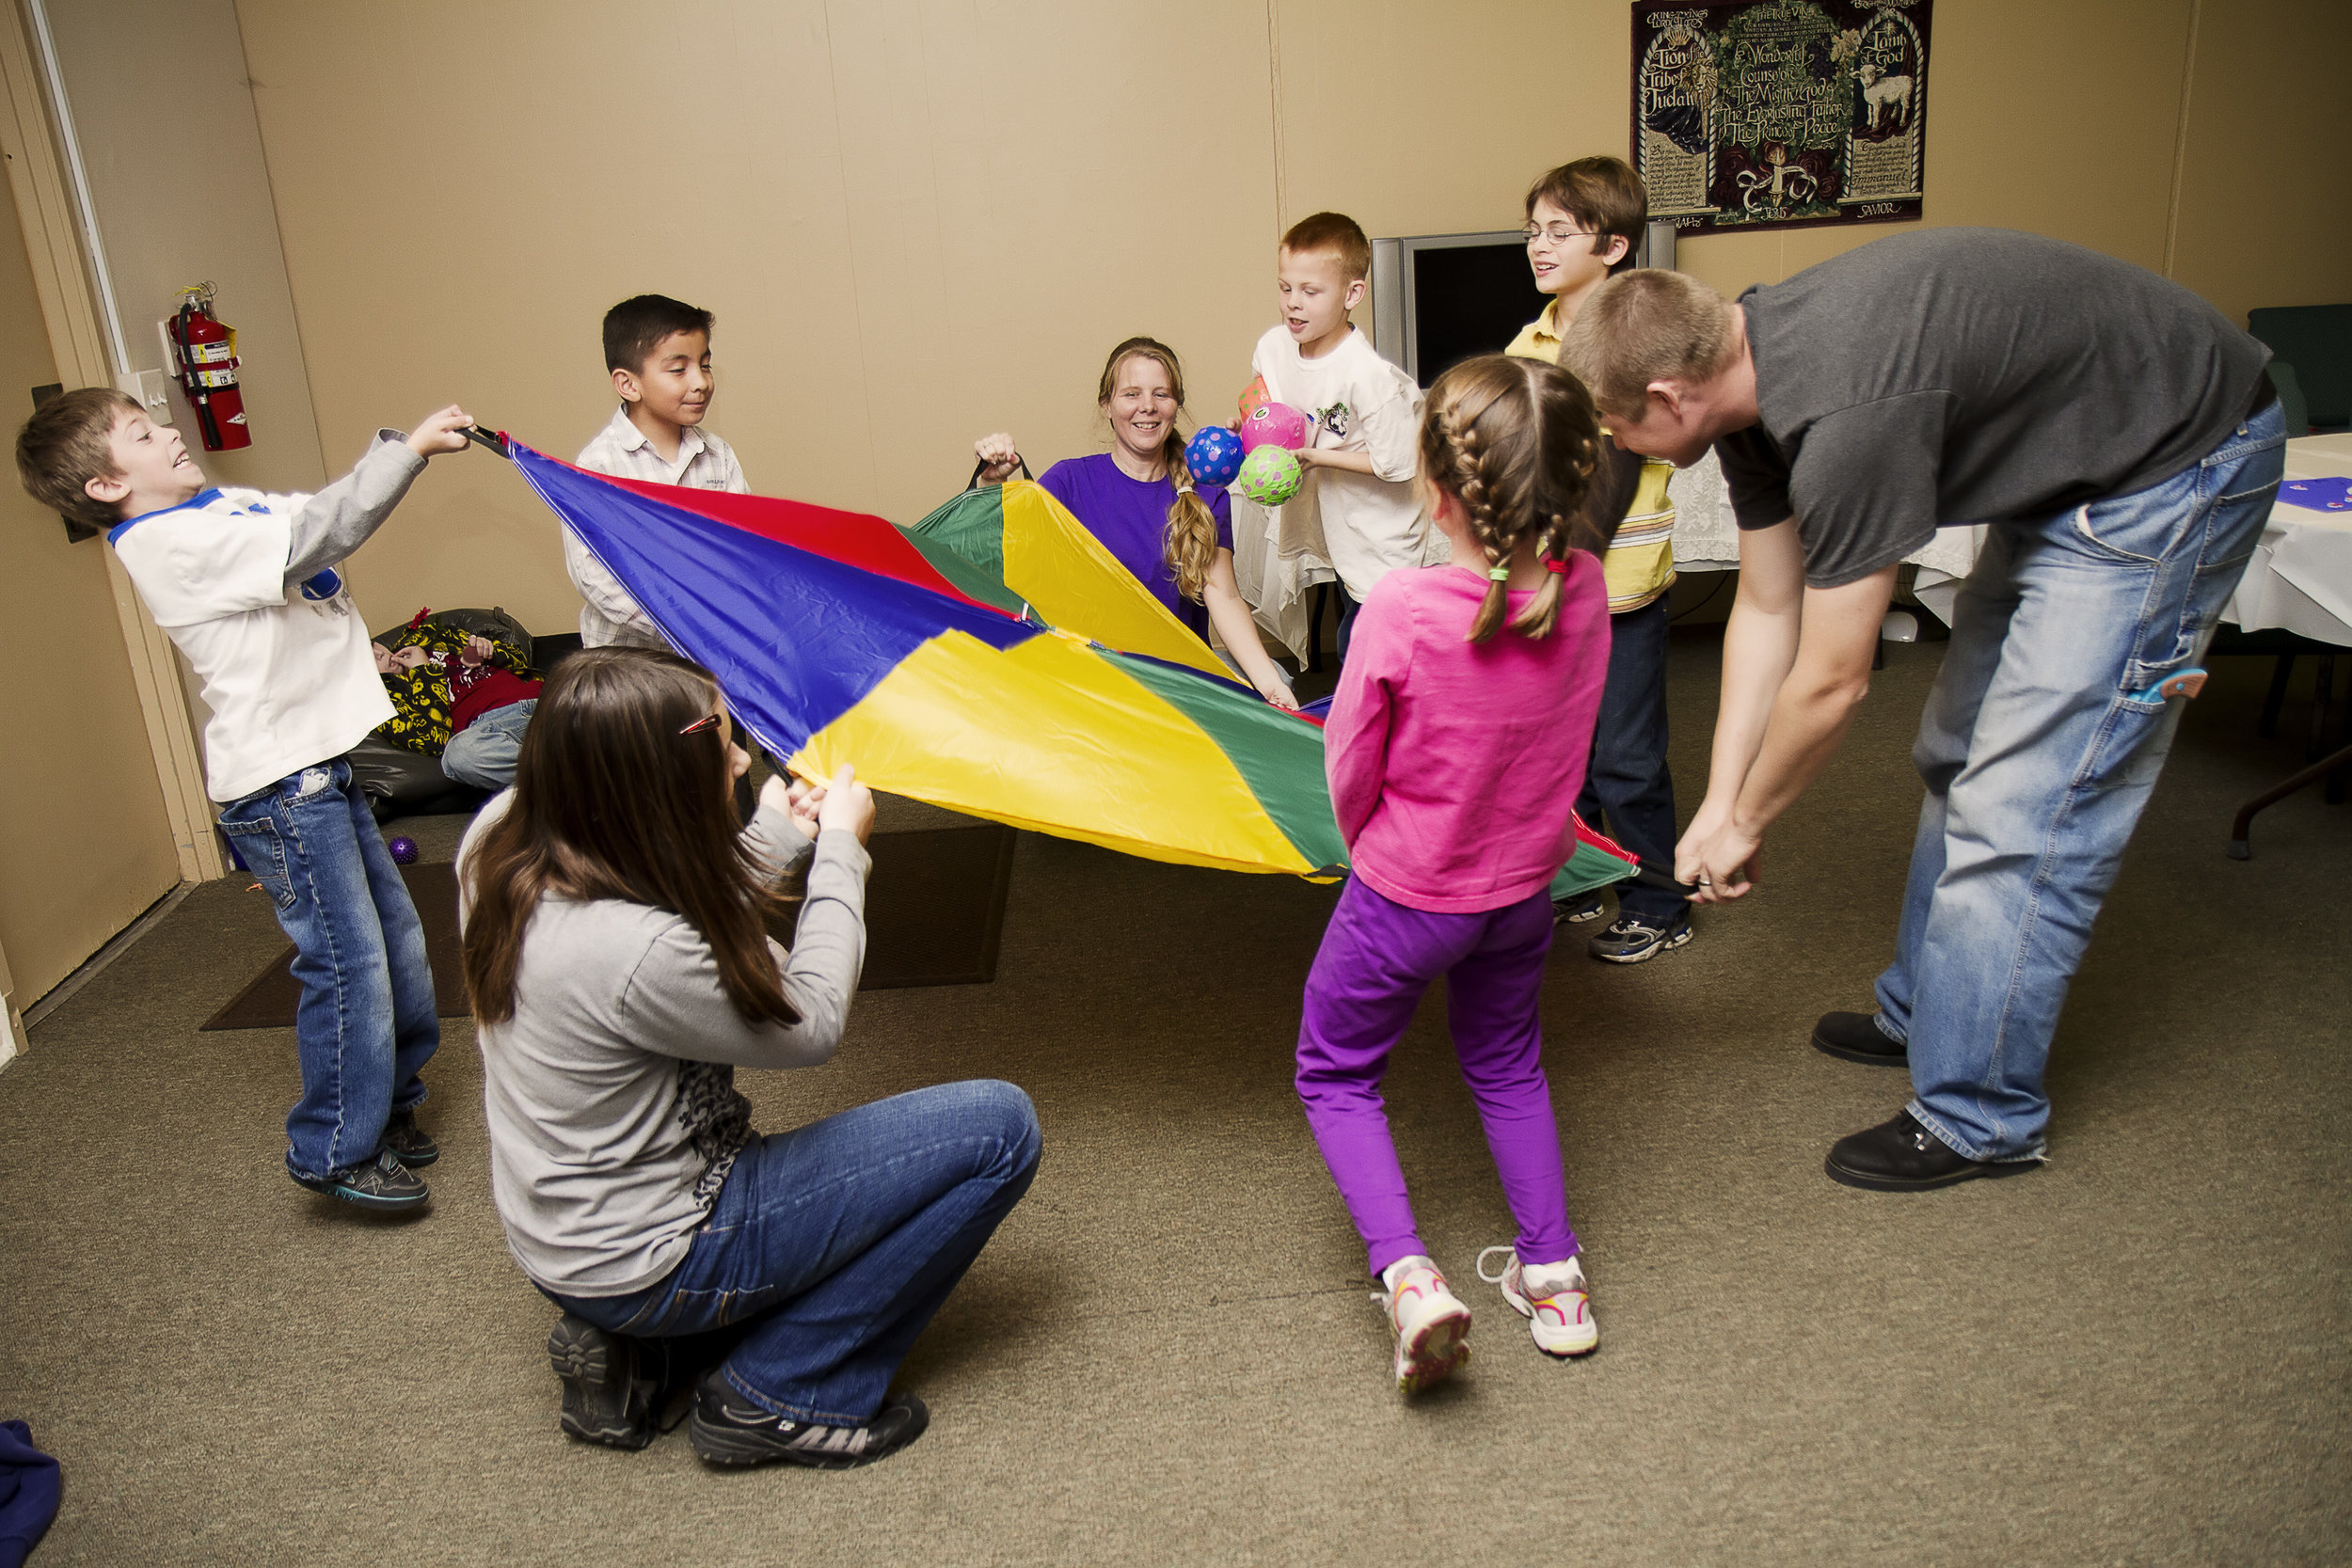 REVIVE - Join us for Revive, All in Need's monthly Respite program. These sessions promote social interactions, and allow children to participate in gross and fine motor activities in a sensory-based atmosphere.